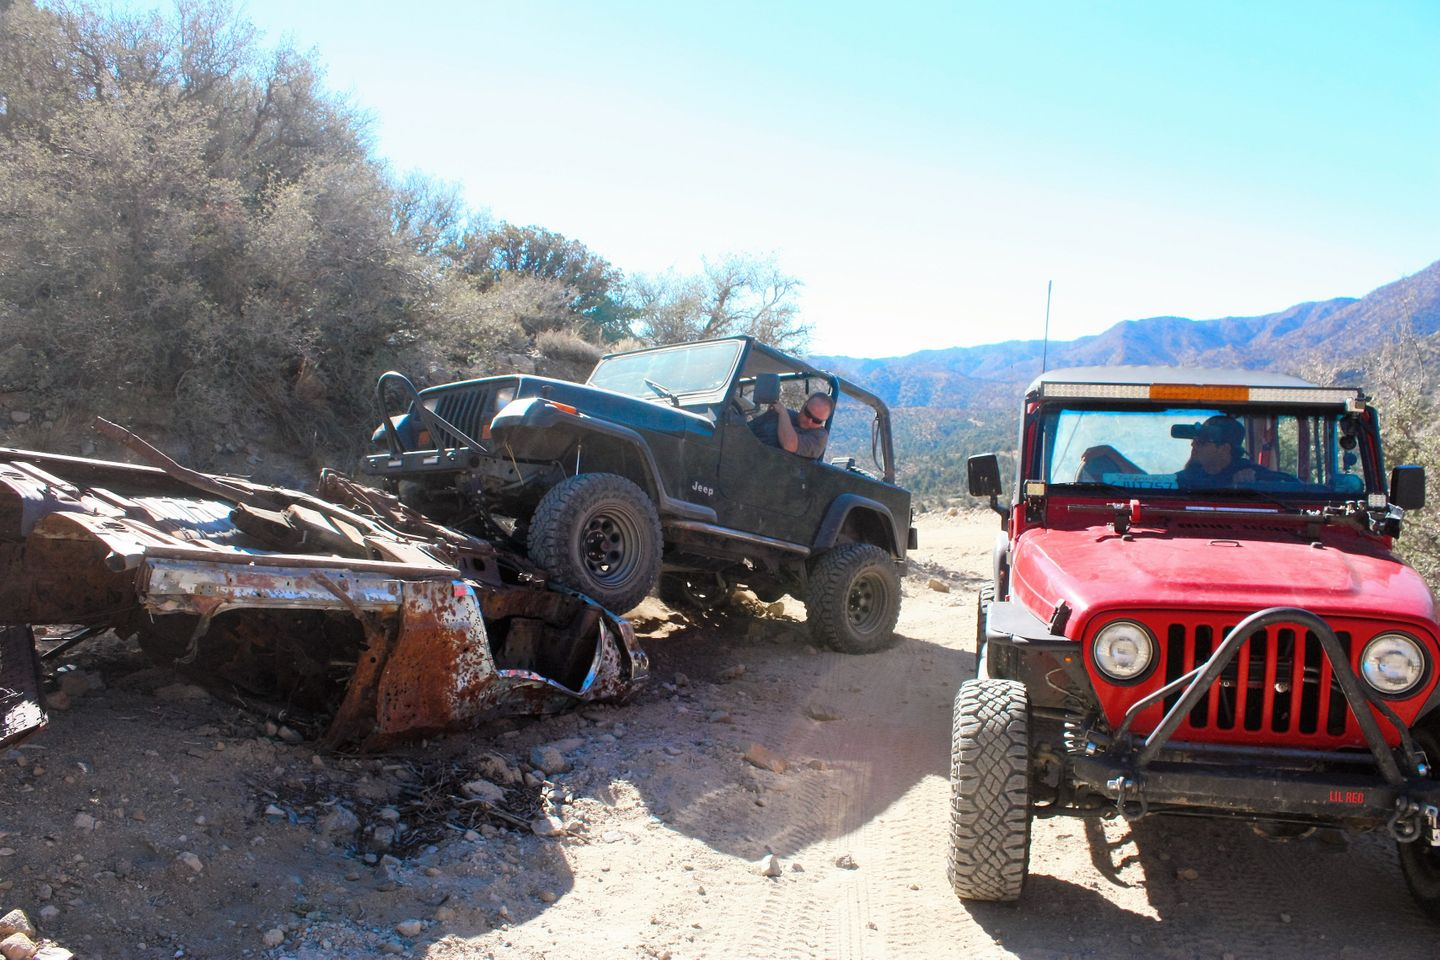 2N02 - Burns Canyon - Waypoint 3: Old Pontiac